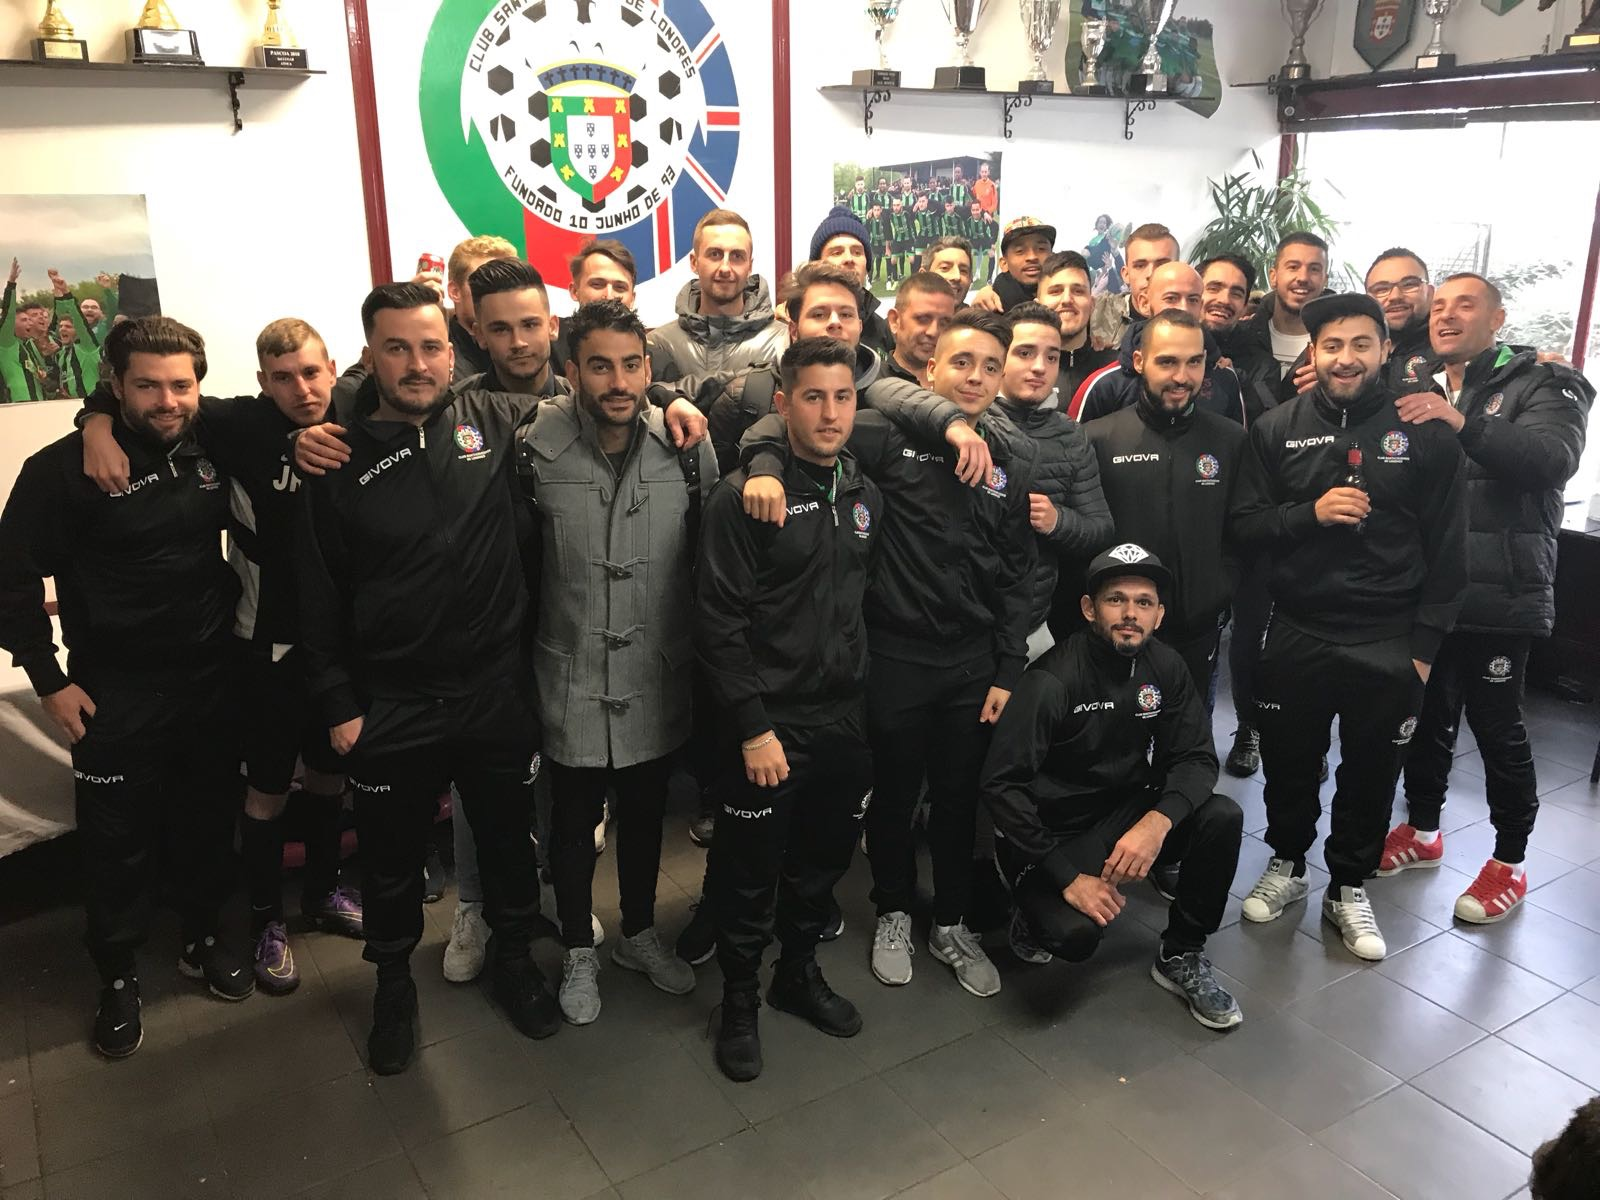 Orpington Eagles show their is no hard feelings after their thumping at the hands of Club Santacruzense de Londres in the home team's café after the match. Pic courtesy of Orpington Eagles twitter